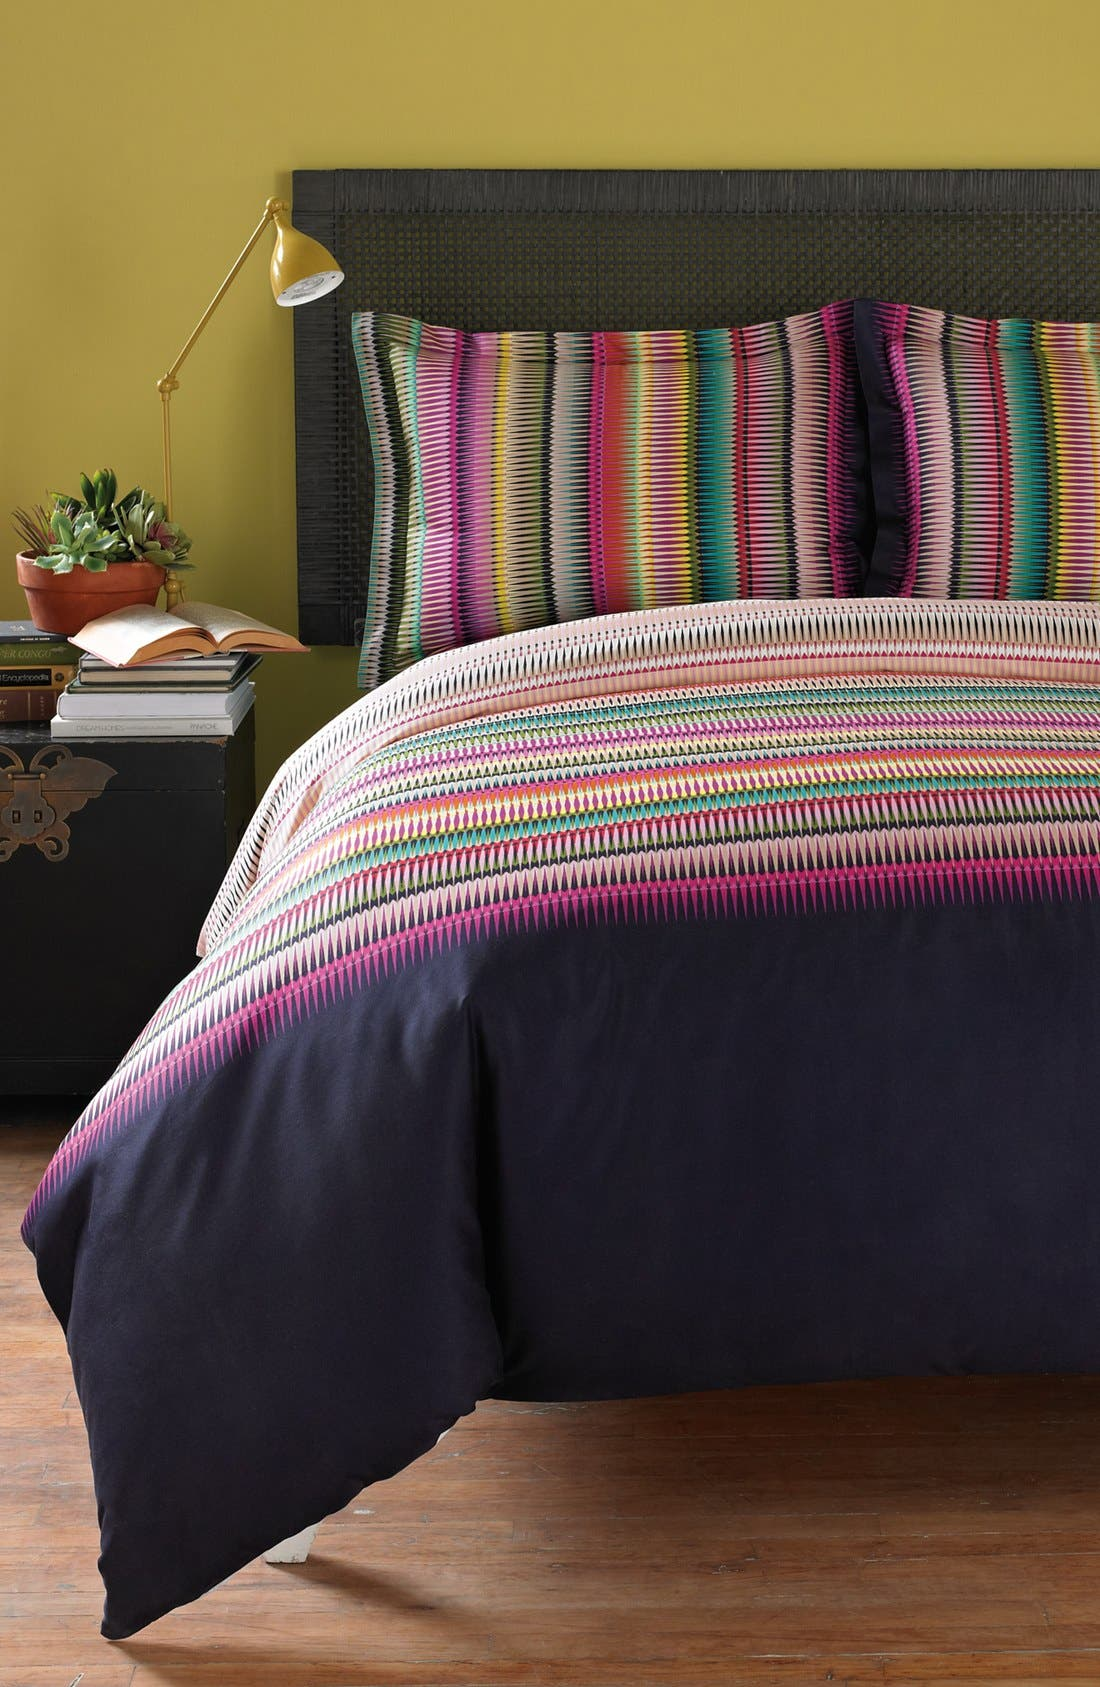 Alternate Image 1 Selected - KAS Designs 'Indio' Duvet Cover (Online Only)